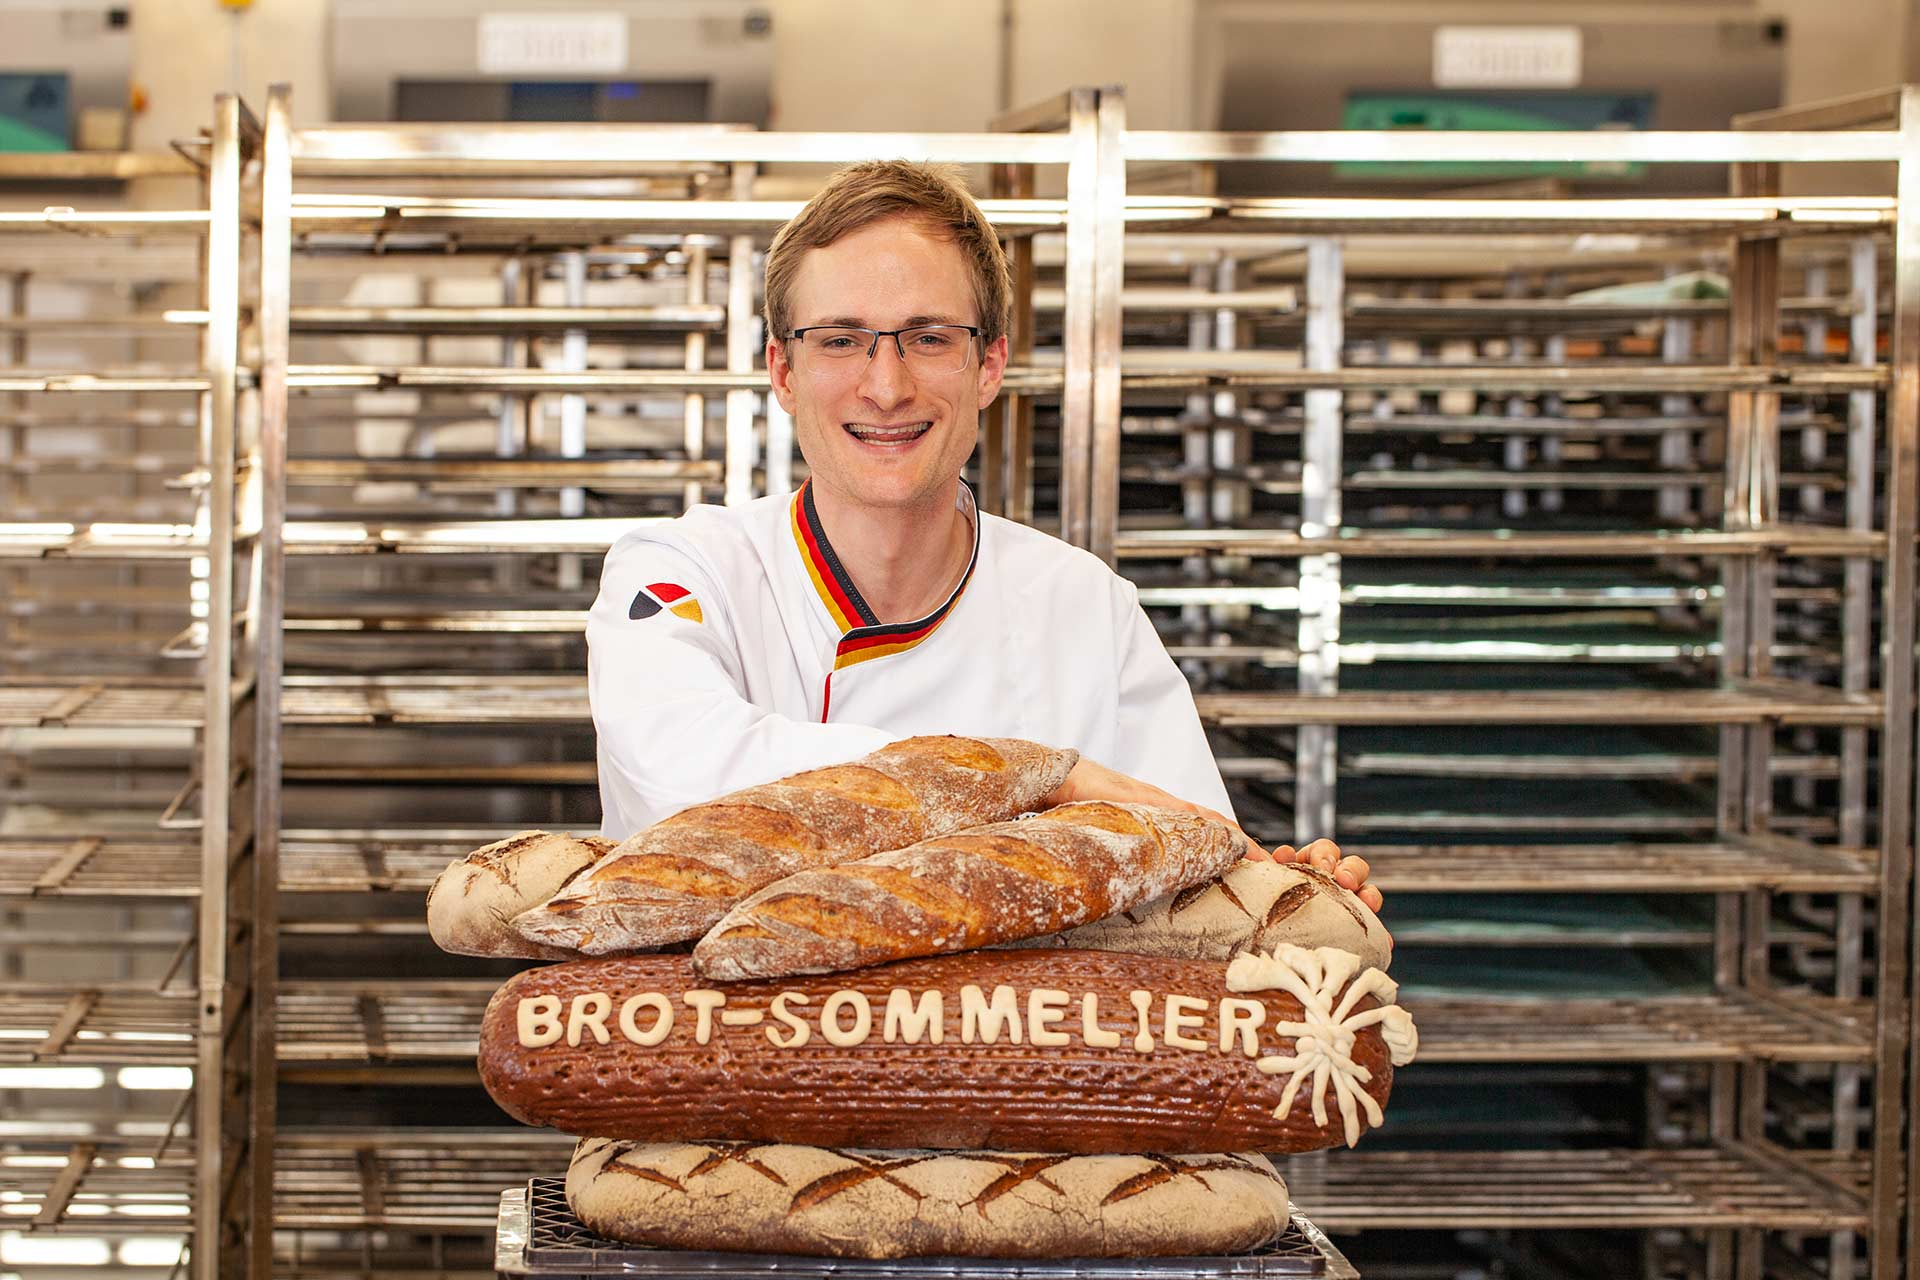 brotsommelier-slider